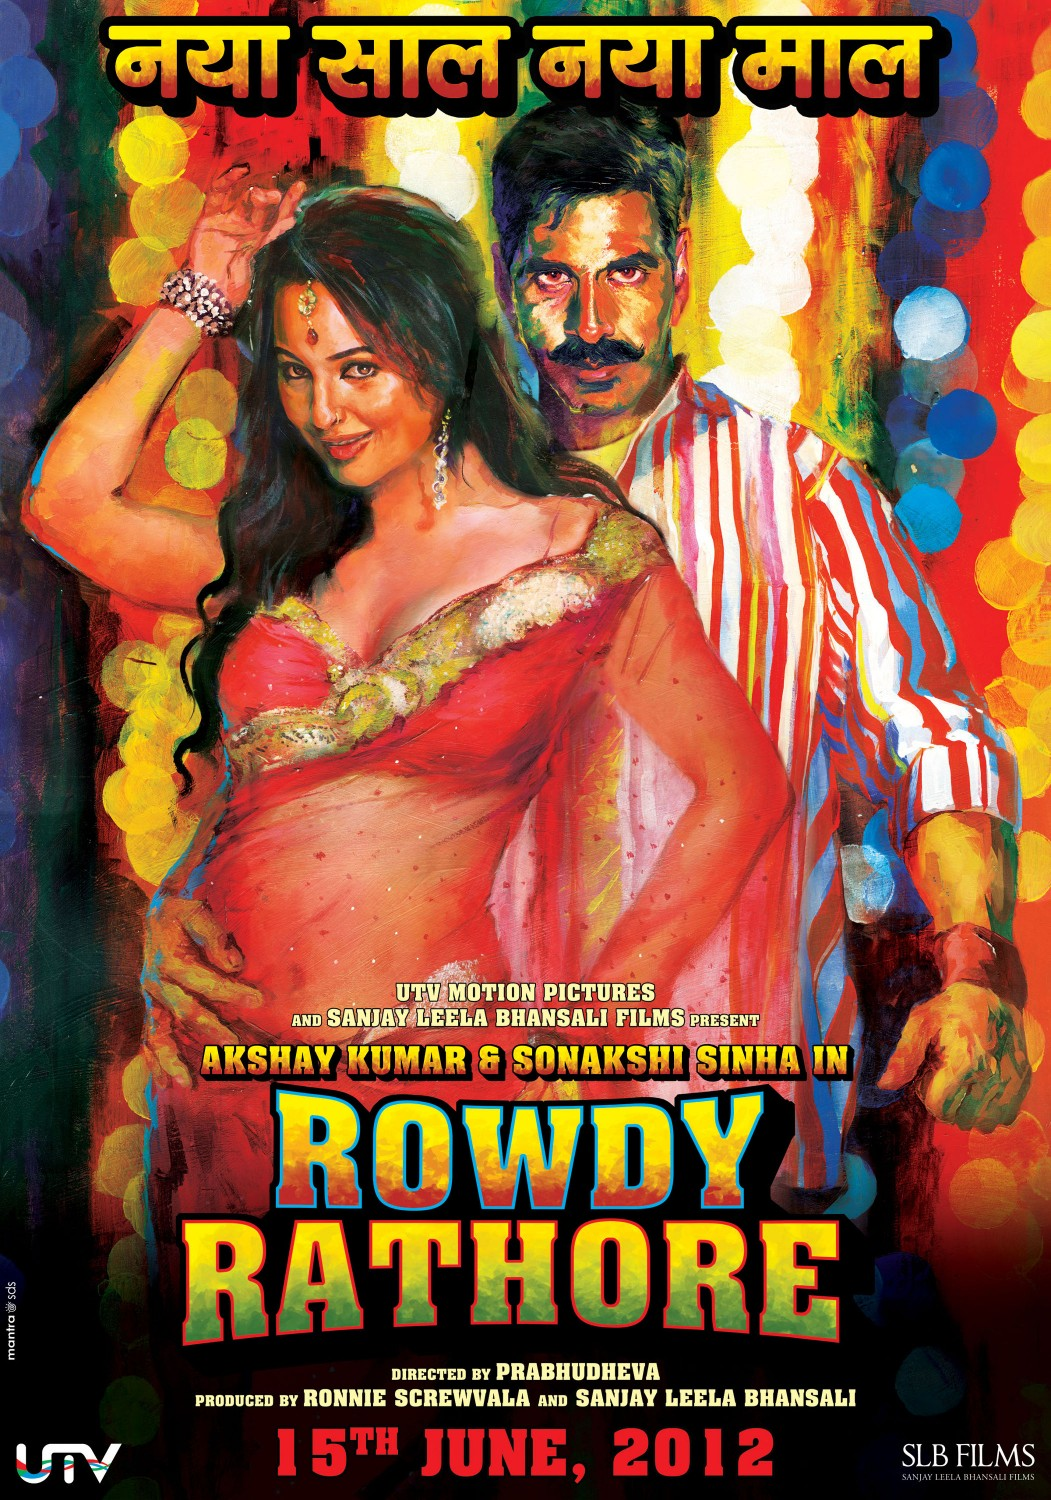 Rowdy rathore video songs hd download